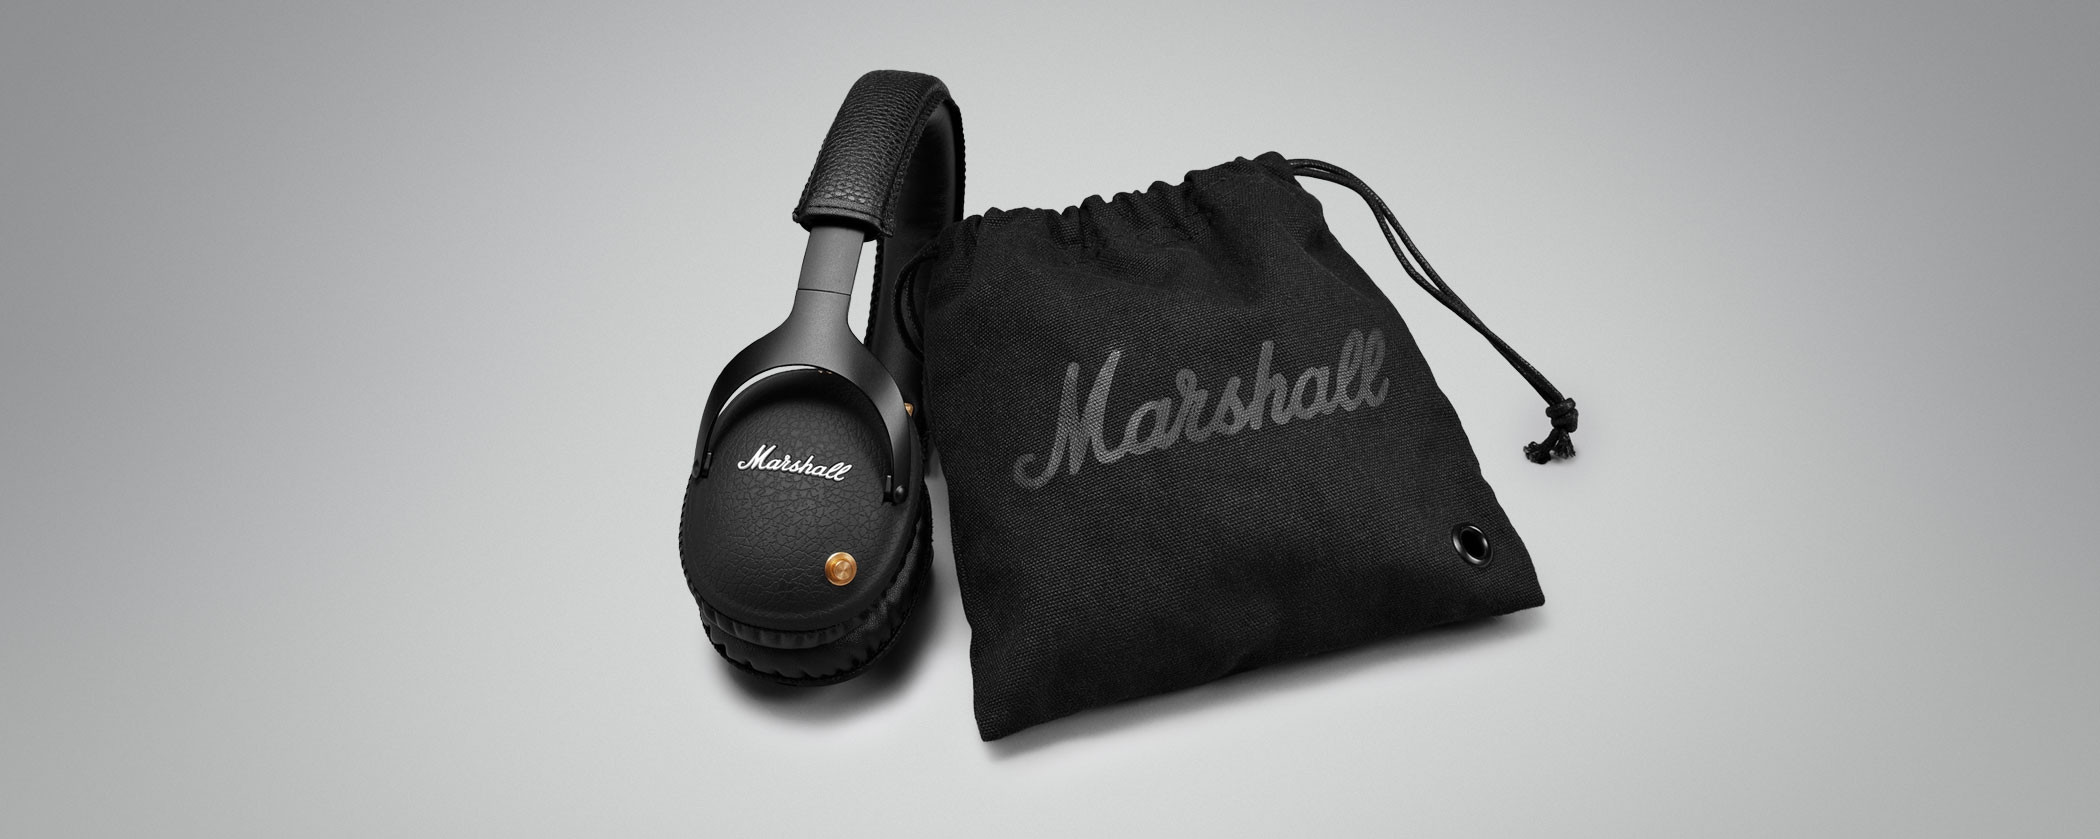 1500295457_marshall-monitor-bluetooth-inceleme-3.jpg